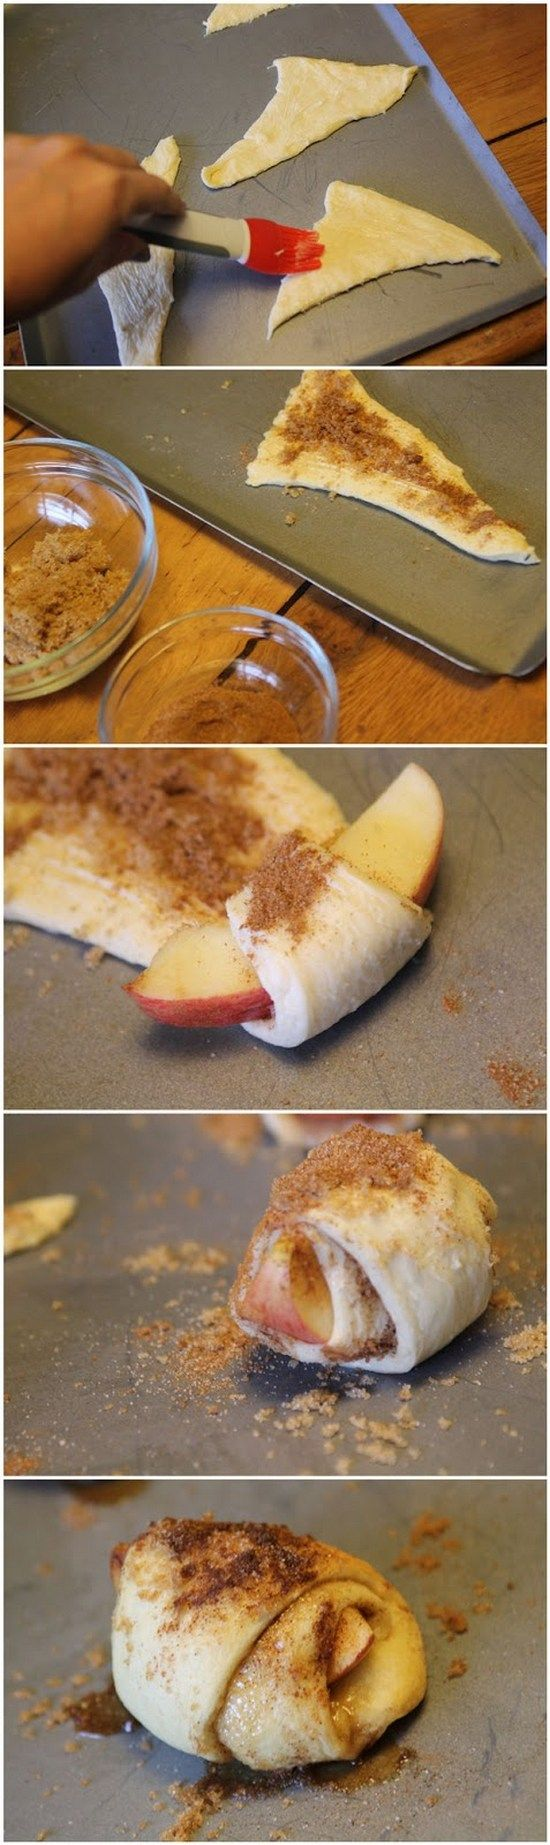 Omg!!! My mom and I are trying to make these now!!! We just haven't had a lot of time...